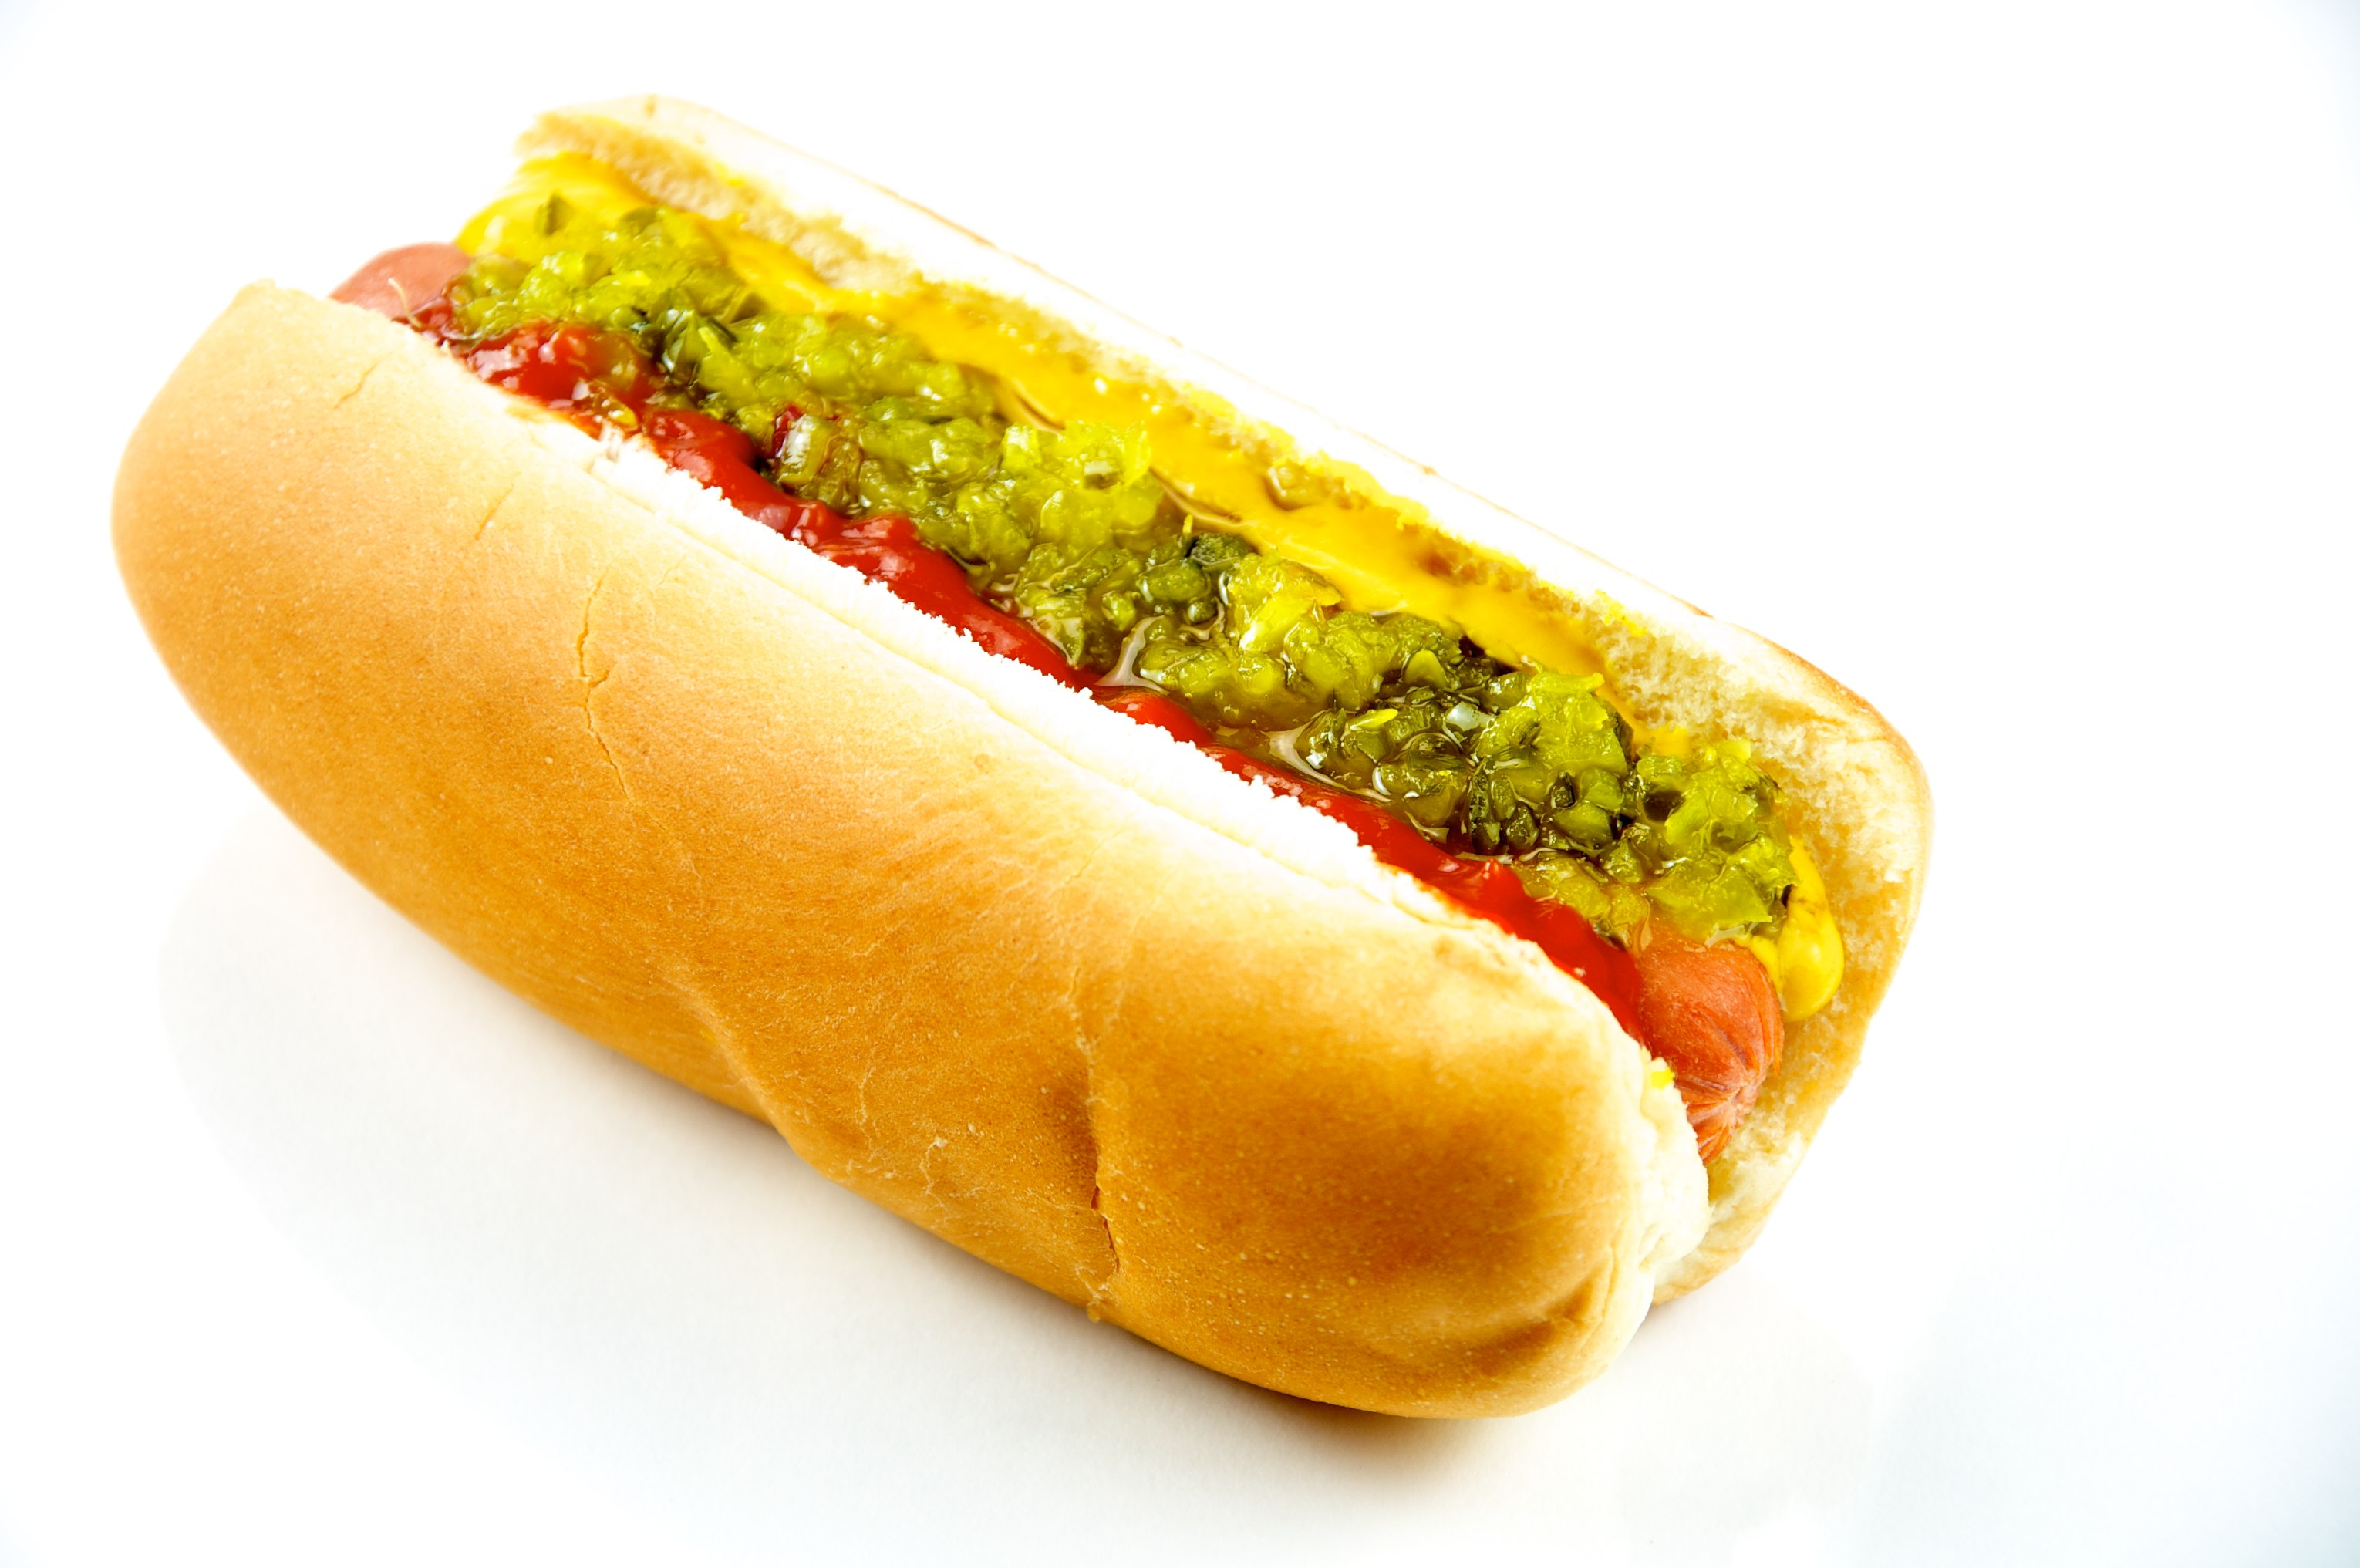 What Is The Worst Food A Dog Can Eat